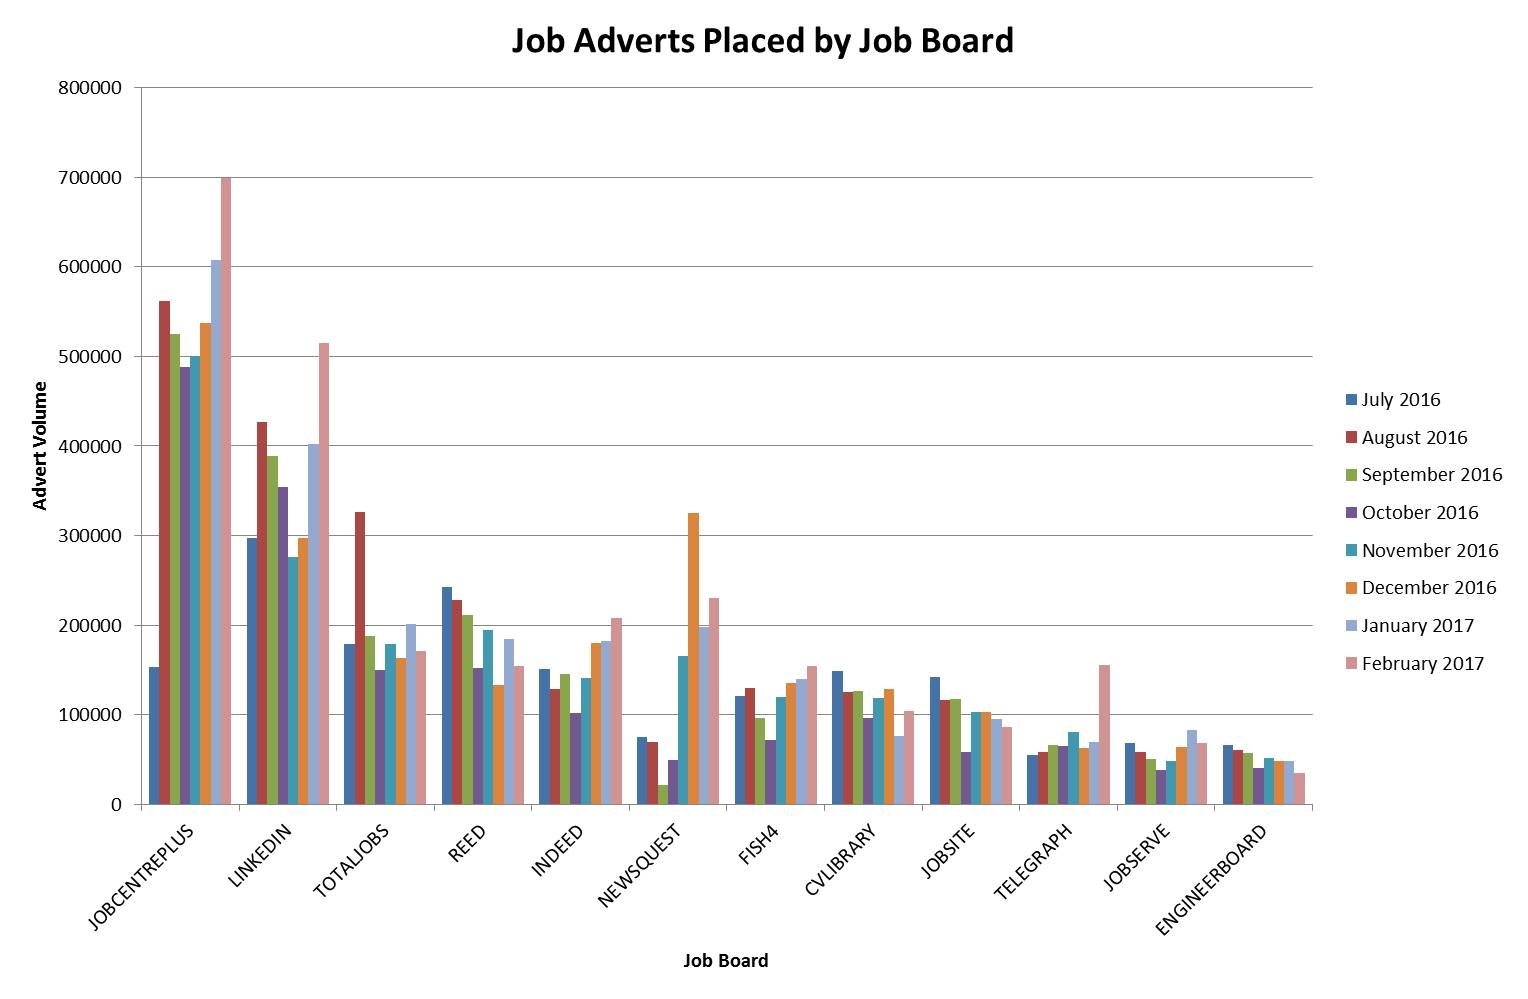 Where Are Jobs Advertised Online?